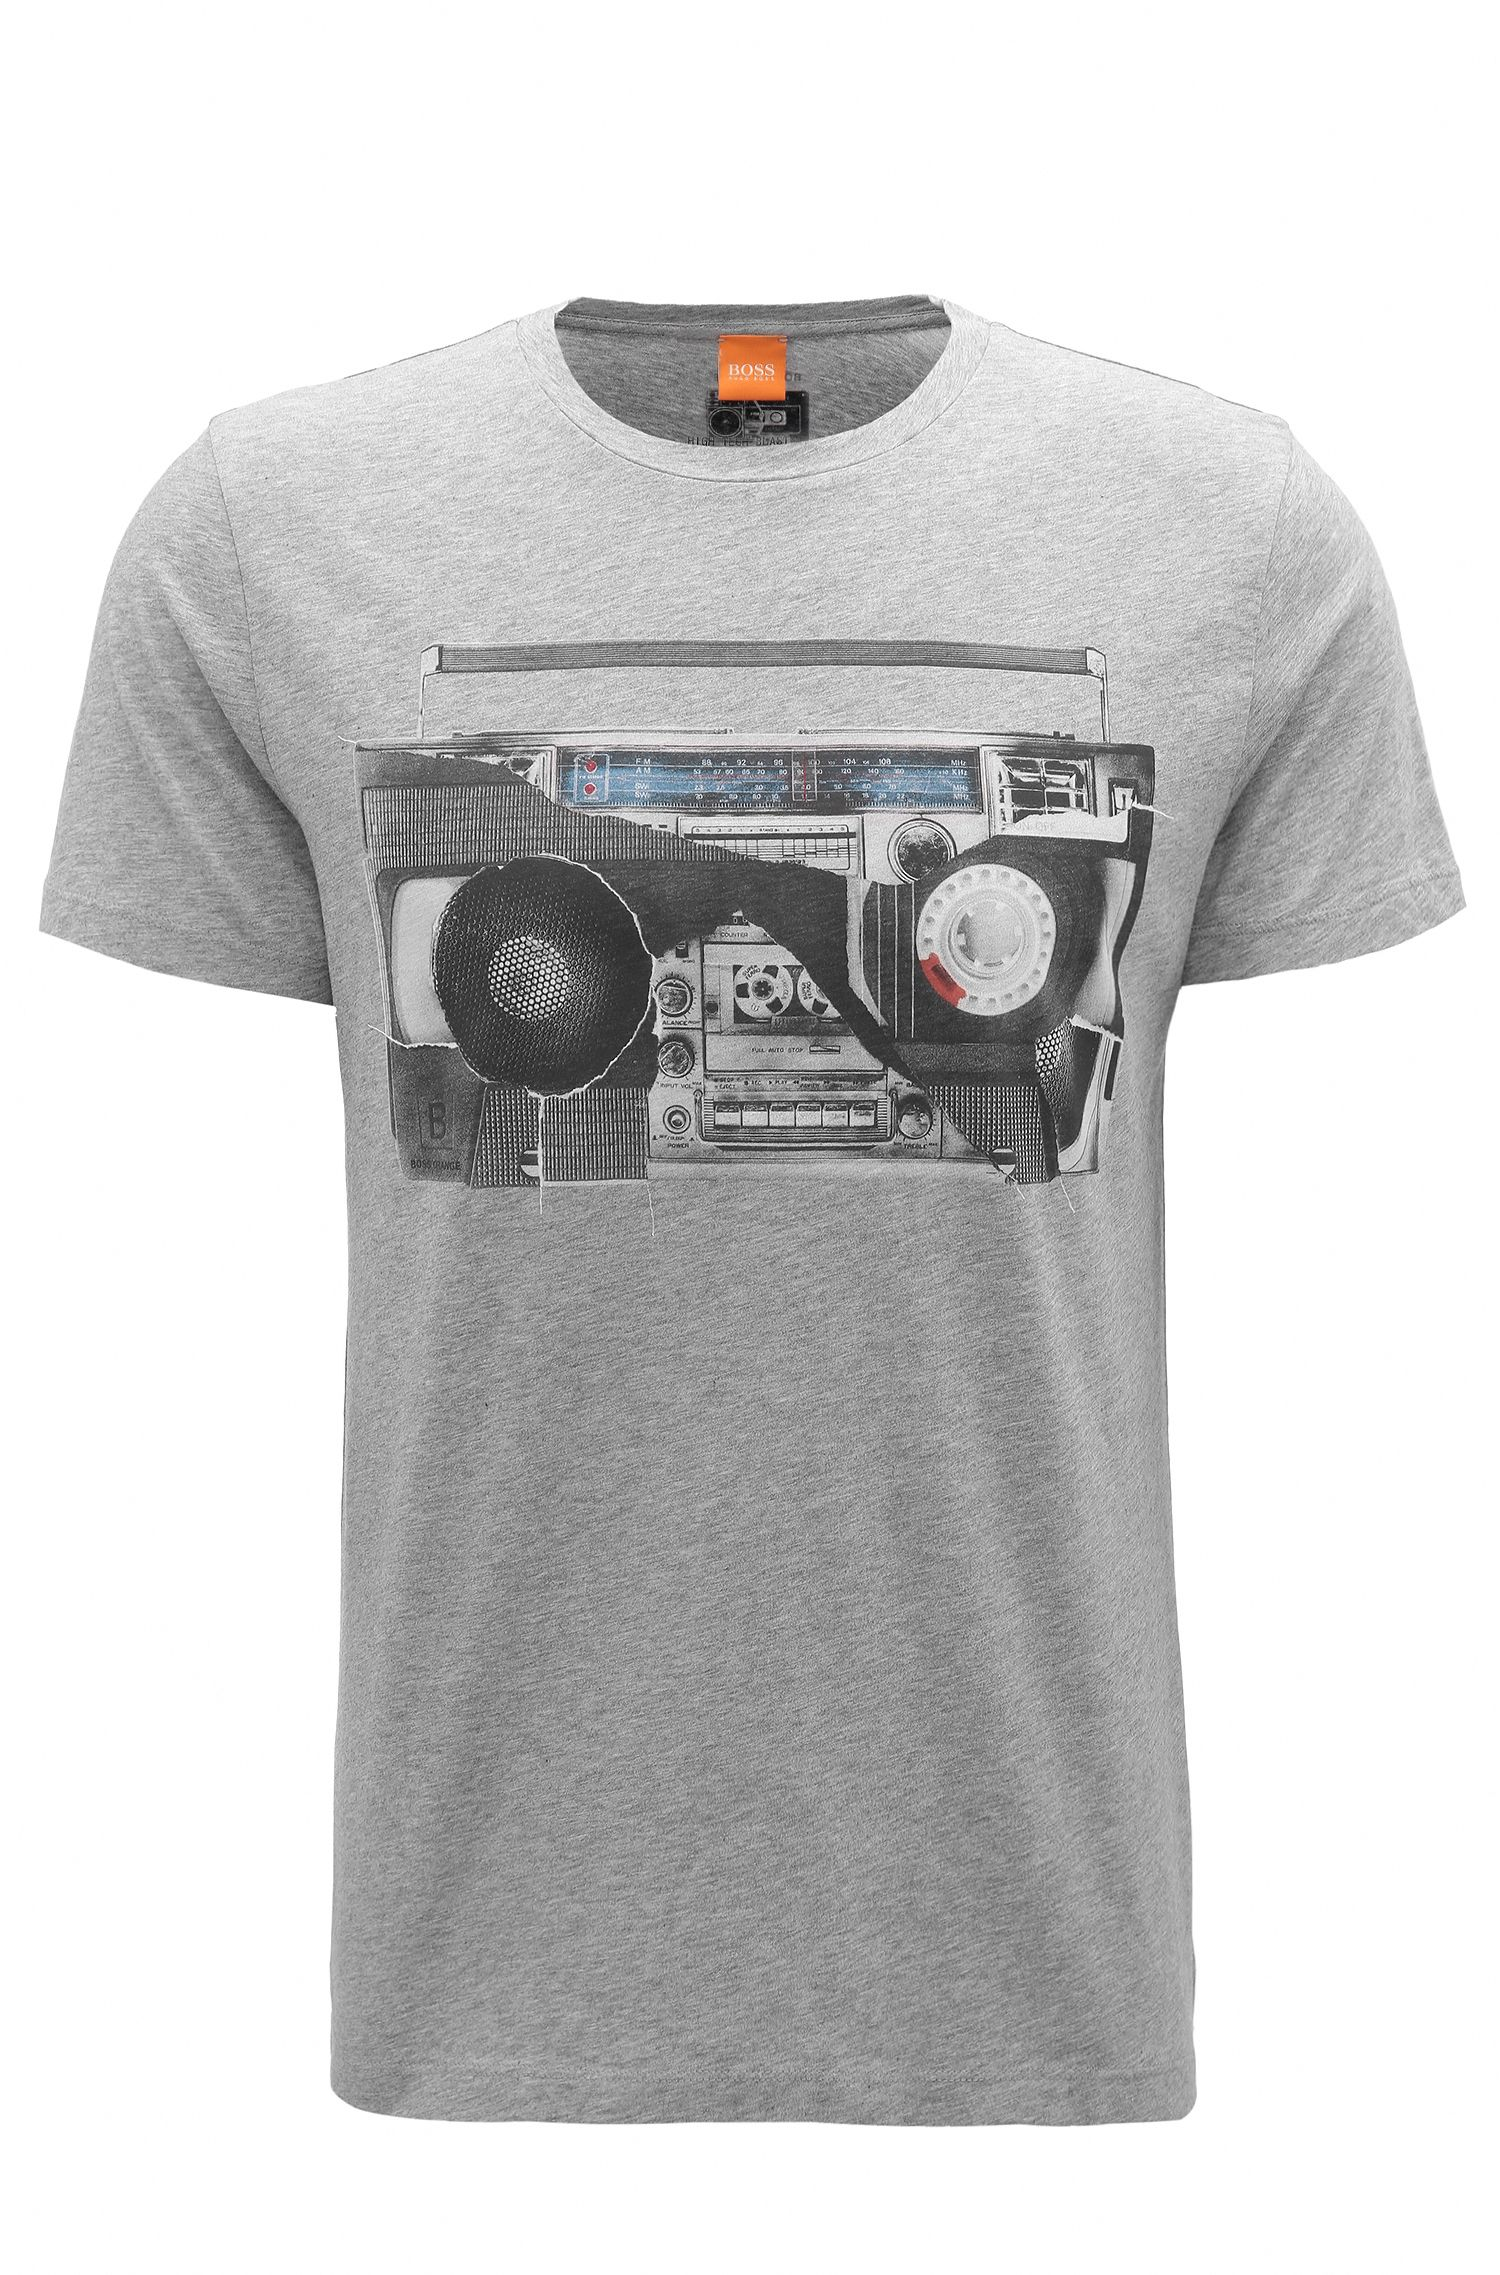 Regular-Fit T-Shirt aus Baumwolle mit Digital-Print